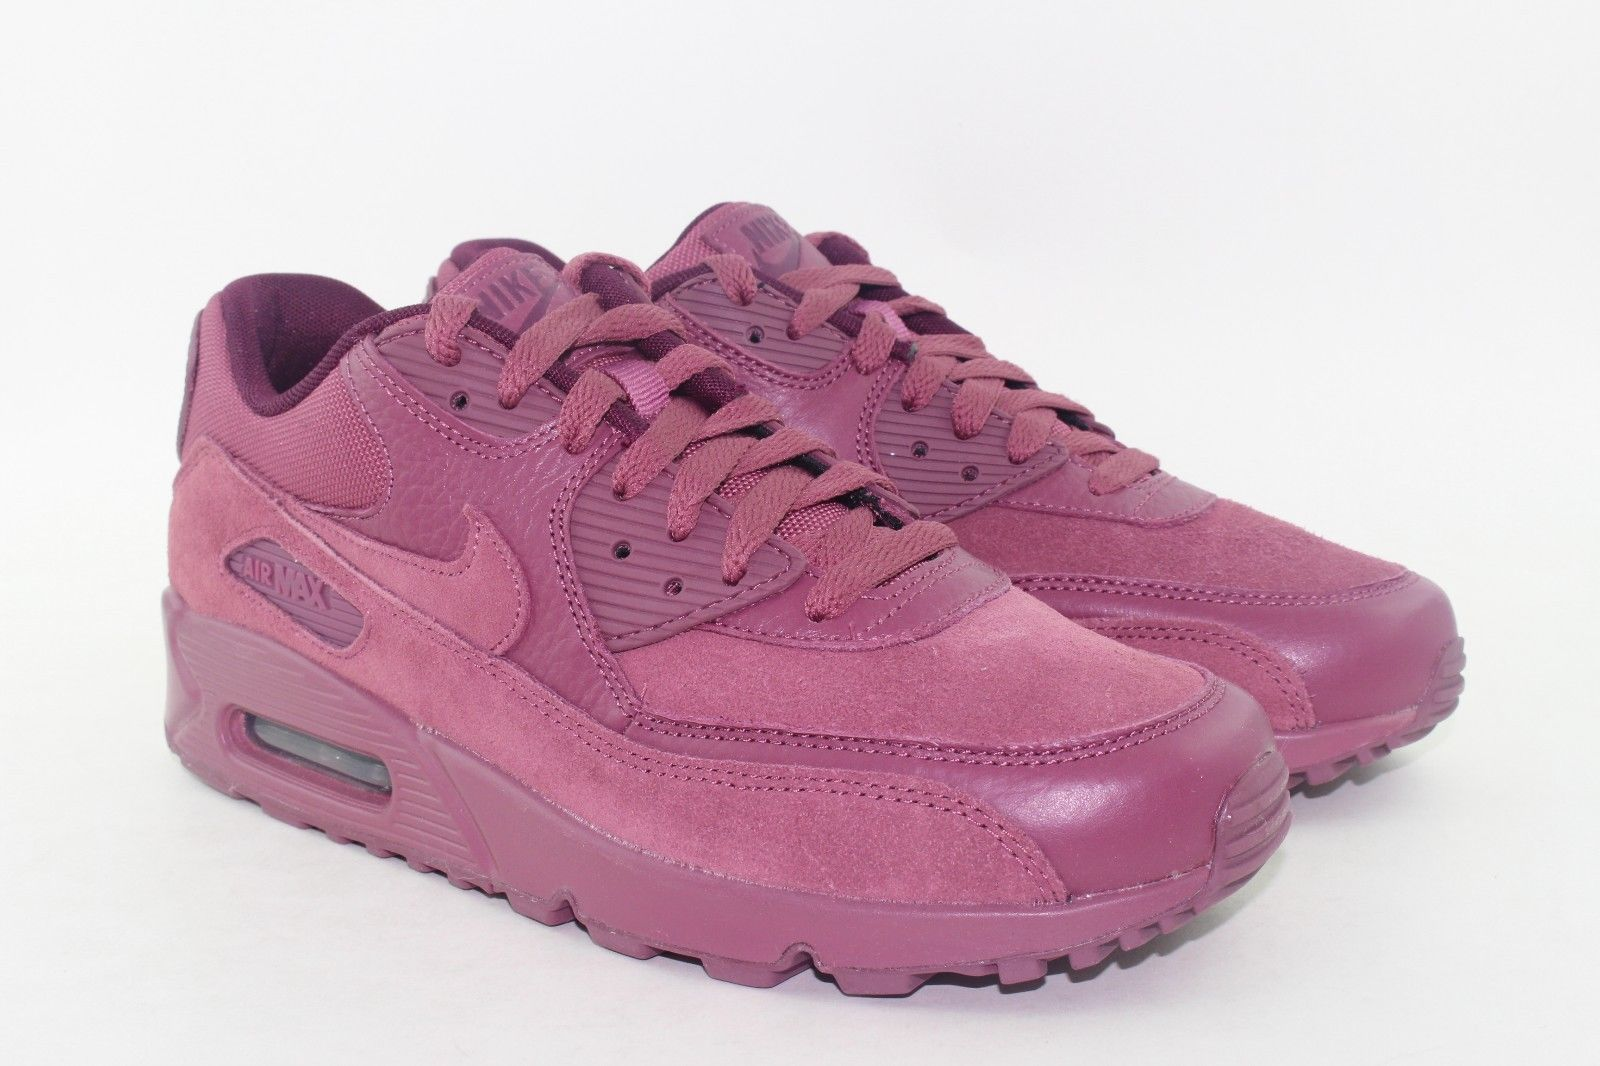 low priced 53fdc 309ed ... NIKE AIR MAX 90 PREMIUM MEN SIZE 7.5 VINTAGE WINE BORDEAUX NEW SUEDE  LEATHER ...